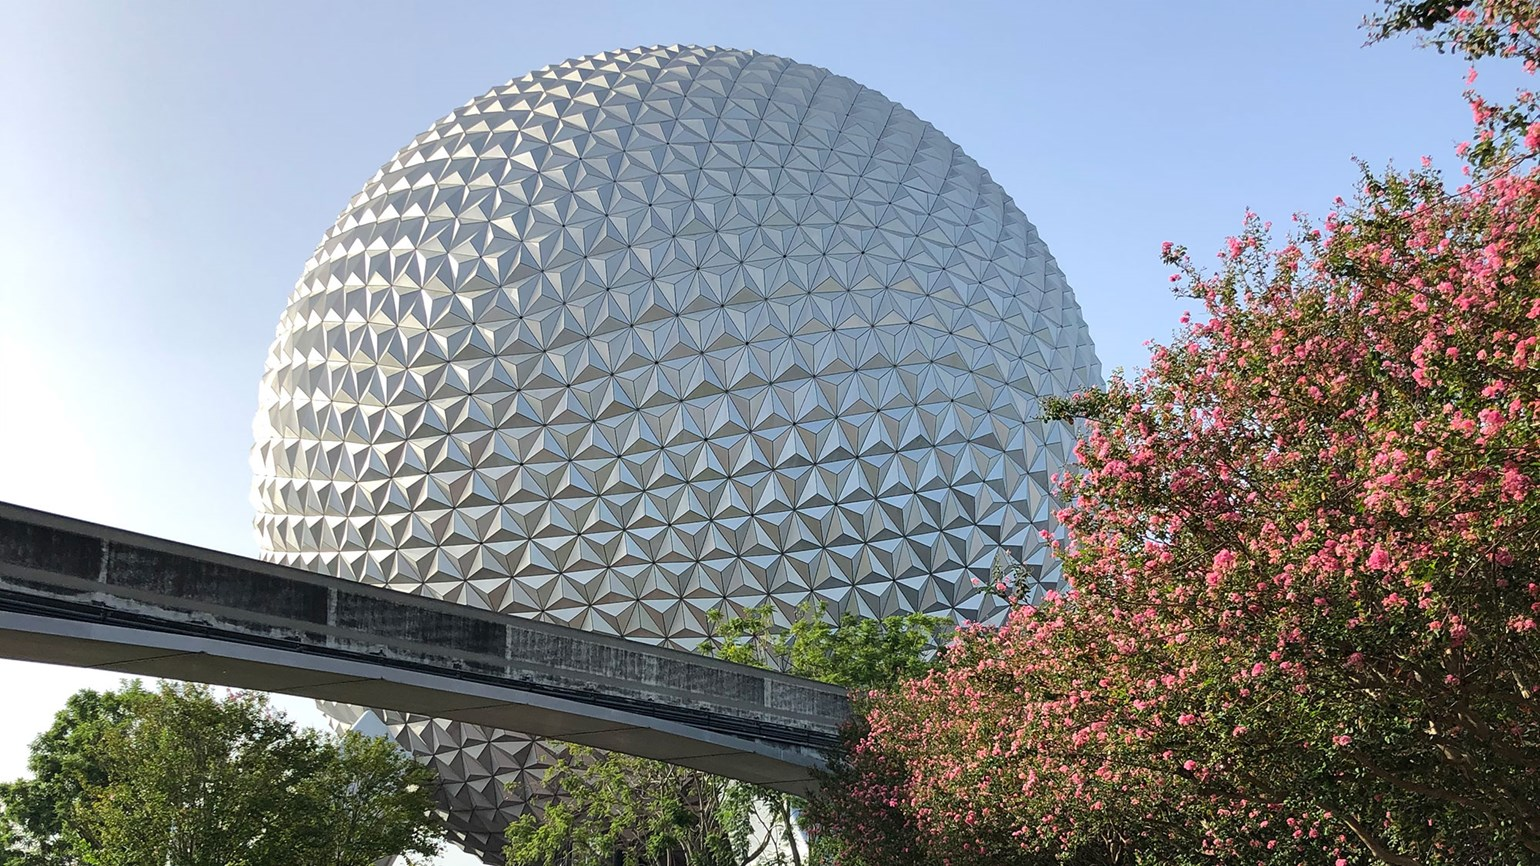 The next Epcot festival is set for January